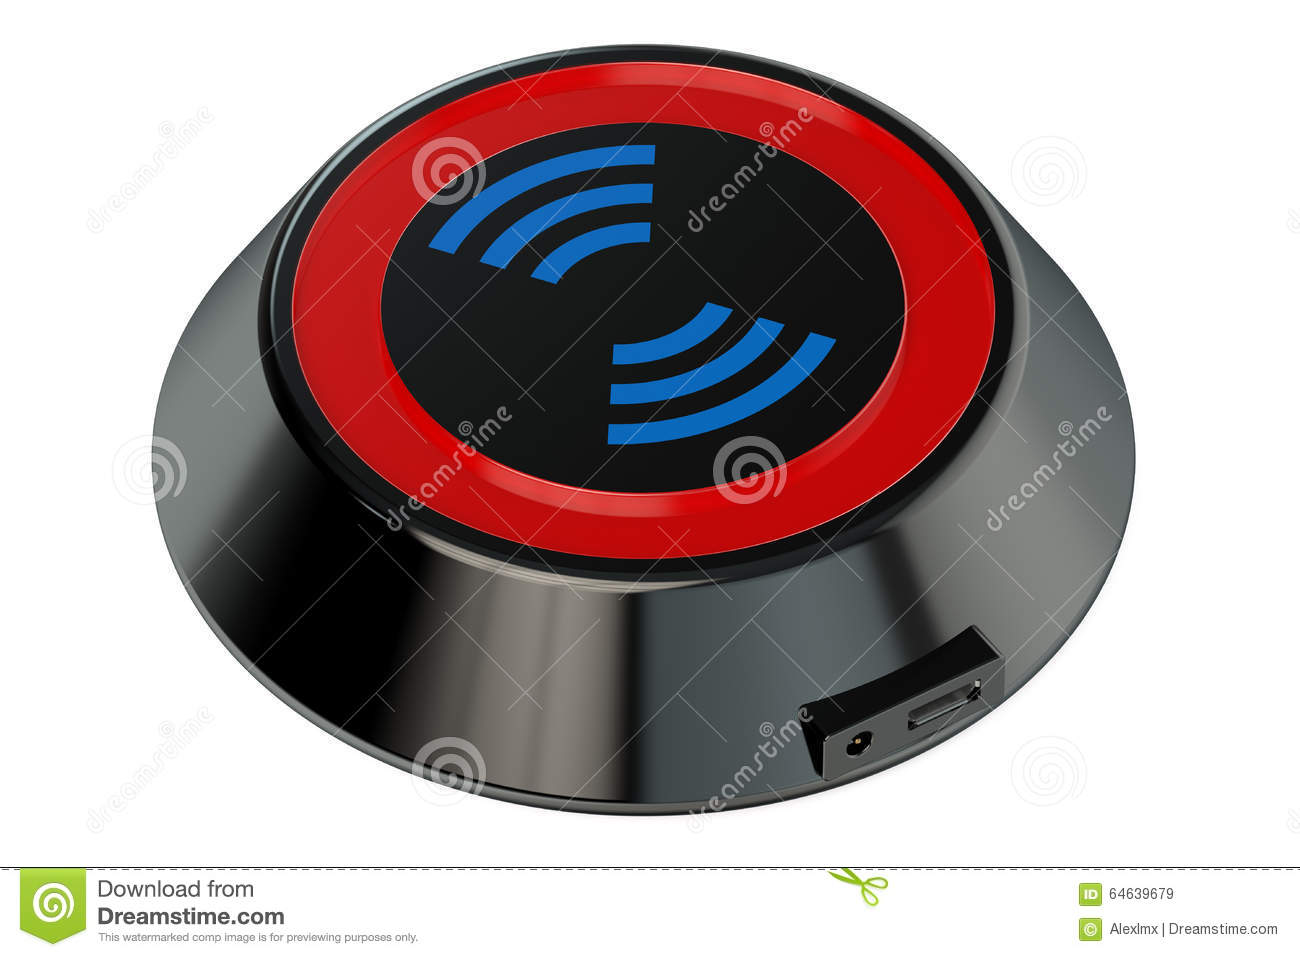 business plan for wireless charger